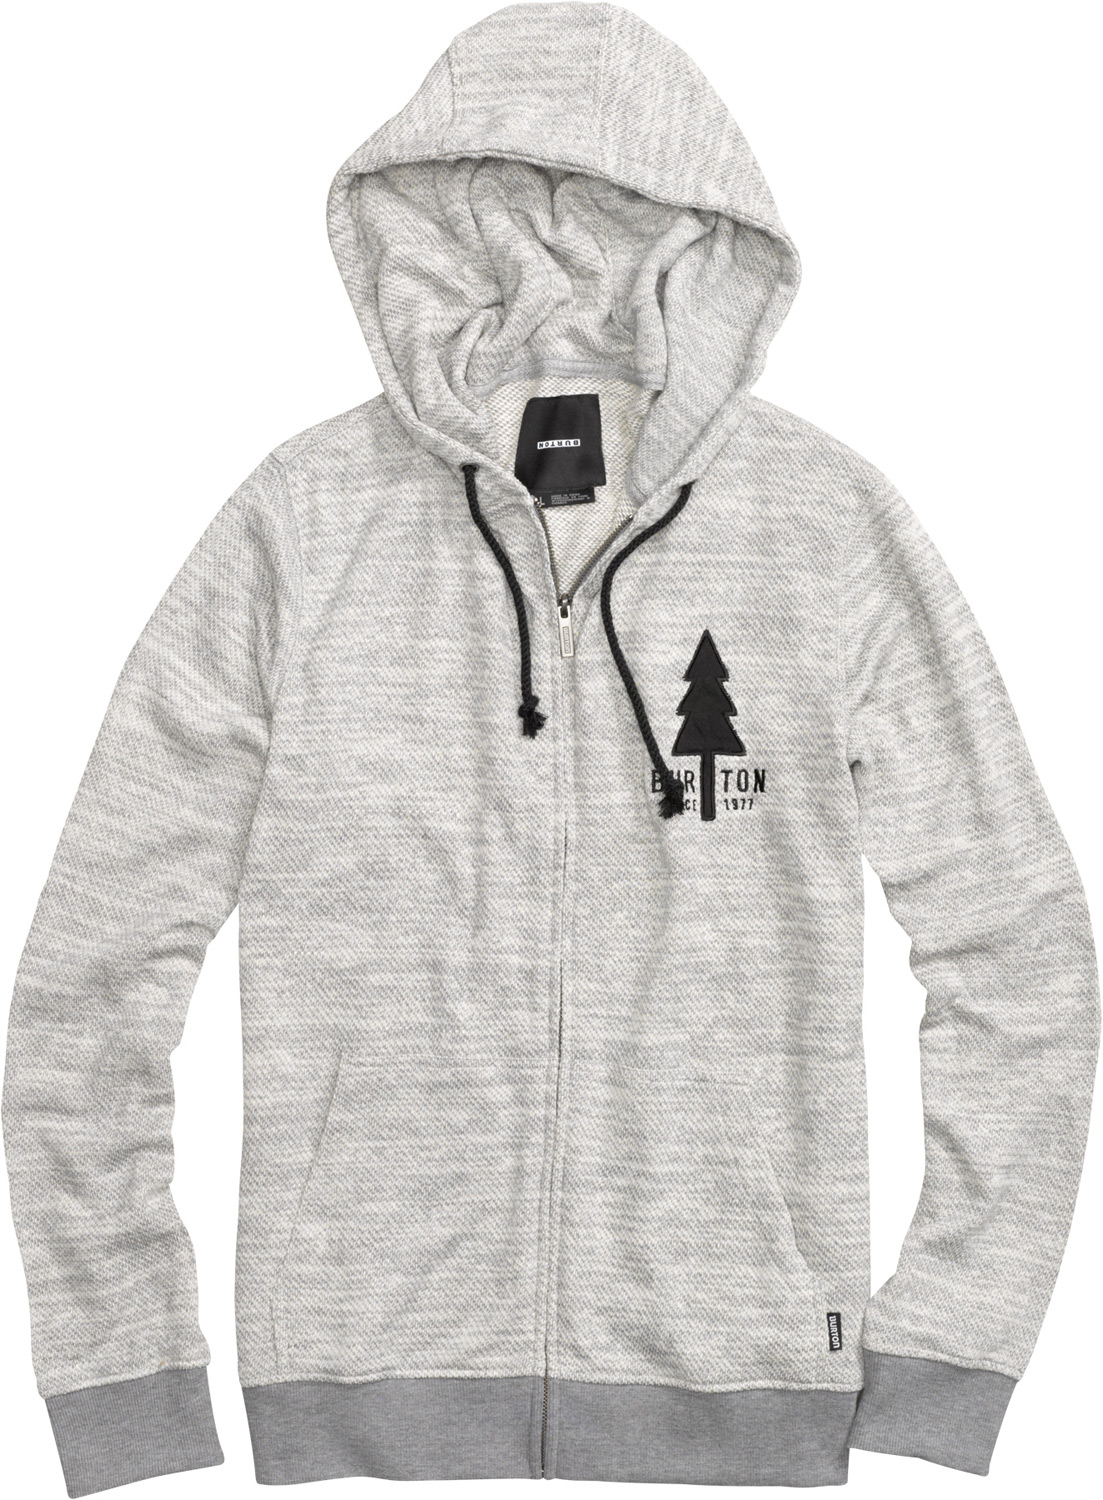 Snowboard The Burton Yellowstone Fullzip Hoodie is a midweight sweatshirt and features an applique twill logo, handwarmer pockets, and Burton's Signature Fit for a relaxed and comfortable experience. It's perfect for everyday wear to work or school, or as a second layer underneath a windproof jacket. The Yellowstone Hoodie sweatshirt is made from a 360G 60-40 cotton/polyester French Terry cloth blend that ensures warmth and softness. The sweatshirt has a drawstring hood and Burton tree logo on the left side of the chest.  Yarn-Dye French Terry Full-Zip   60% Cotton, 40% Polyester, 360G   Twill Logo Applique   Sig Fit - $38.95